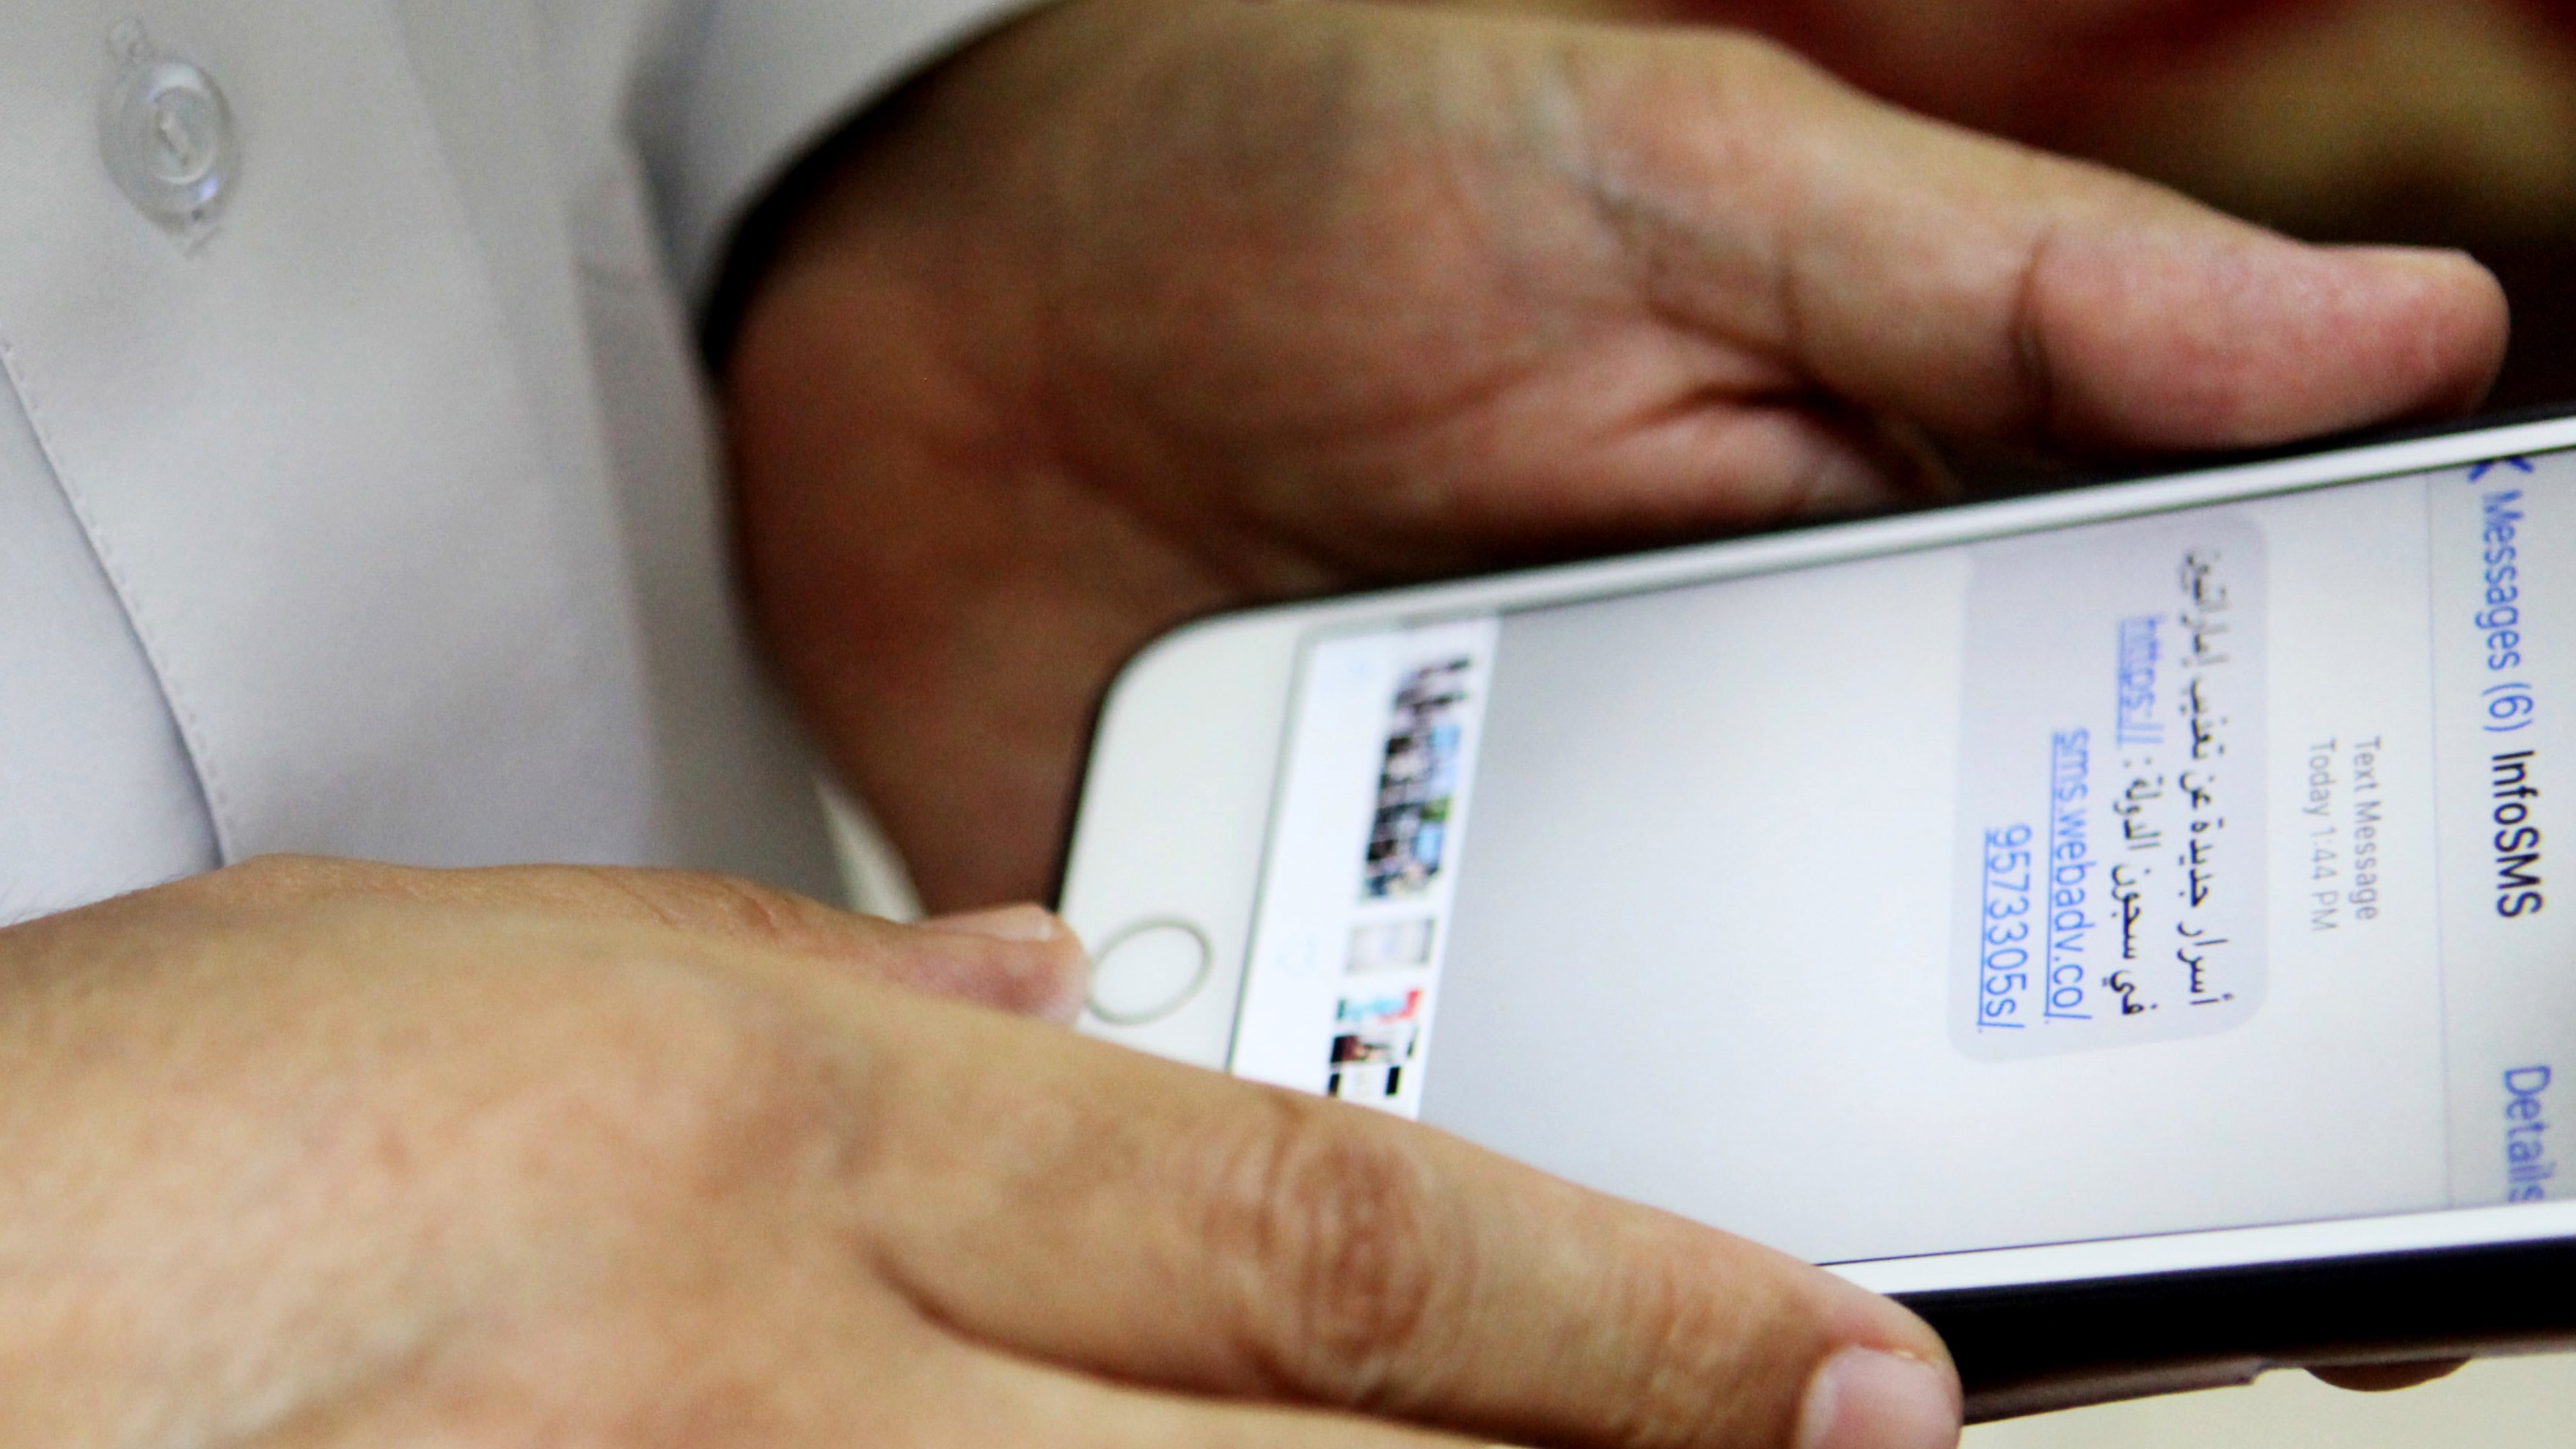 """Human rights activist Ahmed Mansoor shows Associated Press journalists a screenshot of a spoof text message he received in Ajman, United Arab Emirates, on Thursday, Aug. 25, 2016. Mansoor was recently targeted by spyware that can hack into Apple's iPhone handset. The company said Thursday it was updated its security. The text message reads: """"New secrets on the torture of Emirati citizens in jail."""" (AP Photo/Jon Gambrell)"""